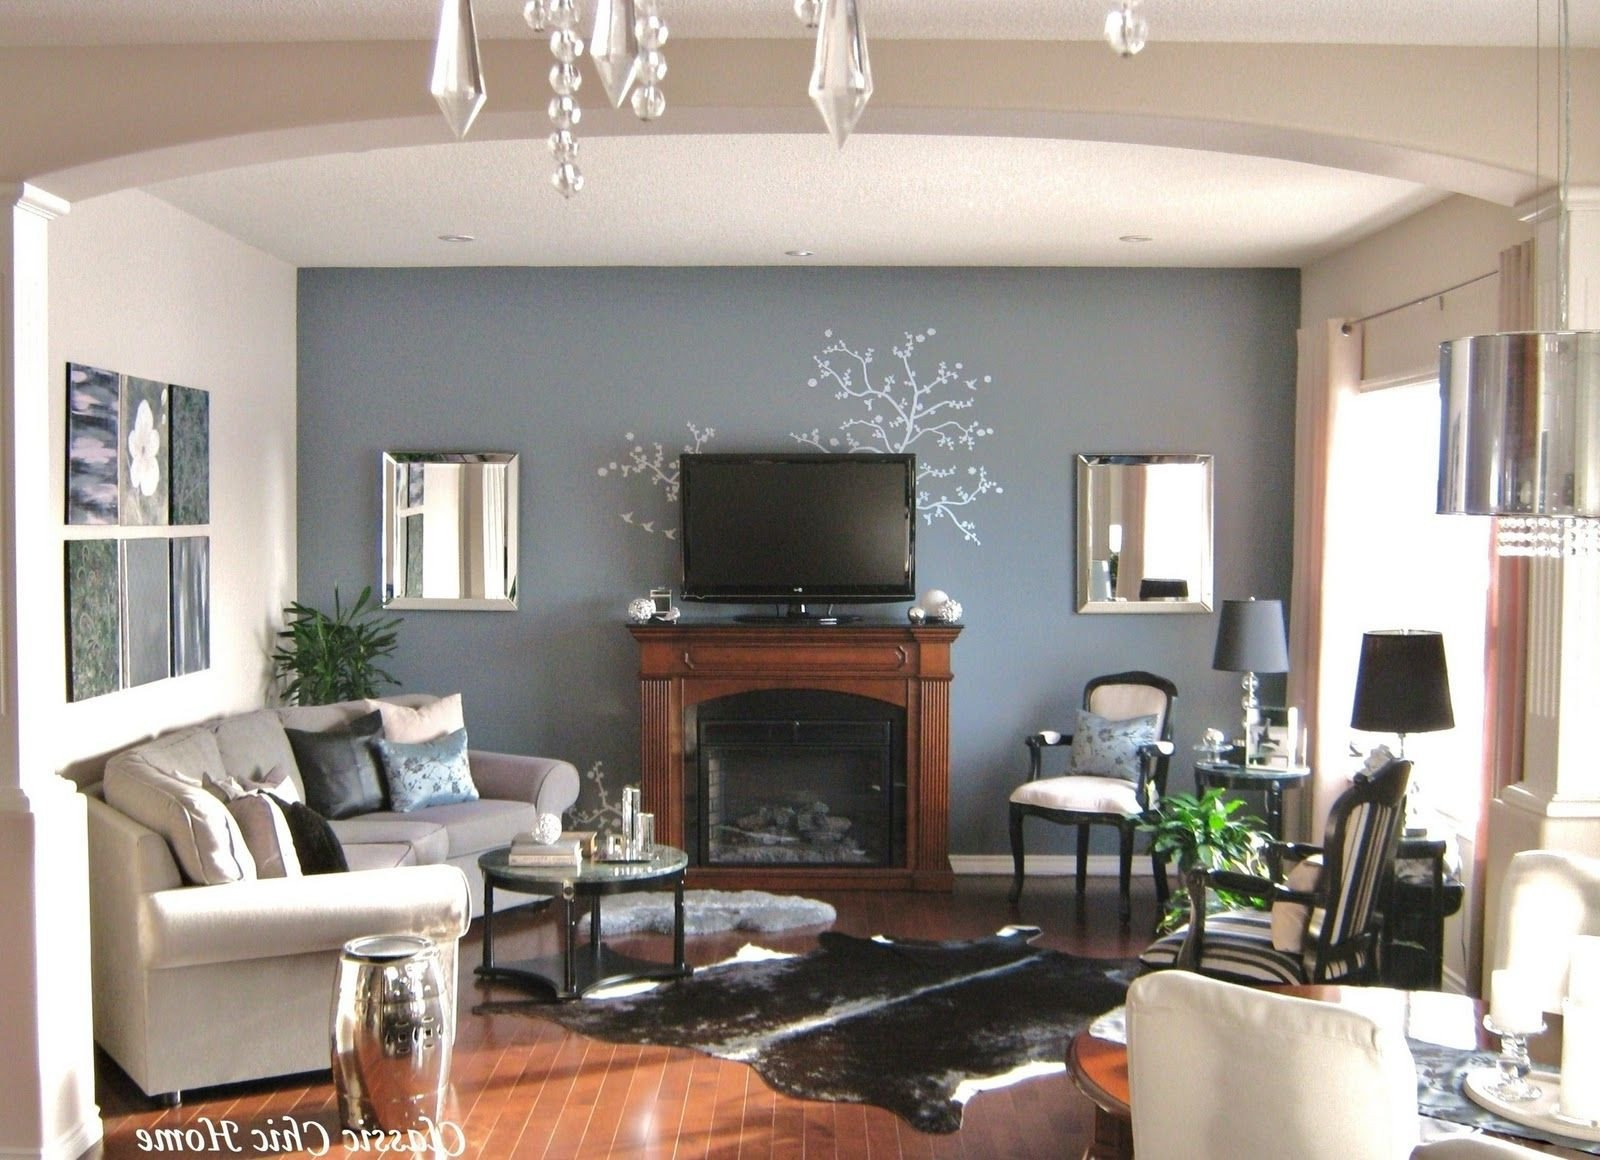 Small Living Roomwith Fireplace Ideas Inspirational 37 Small Living Rooms with Fireplaces Small Living Room Ideas with Fireplace with Regard to